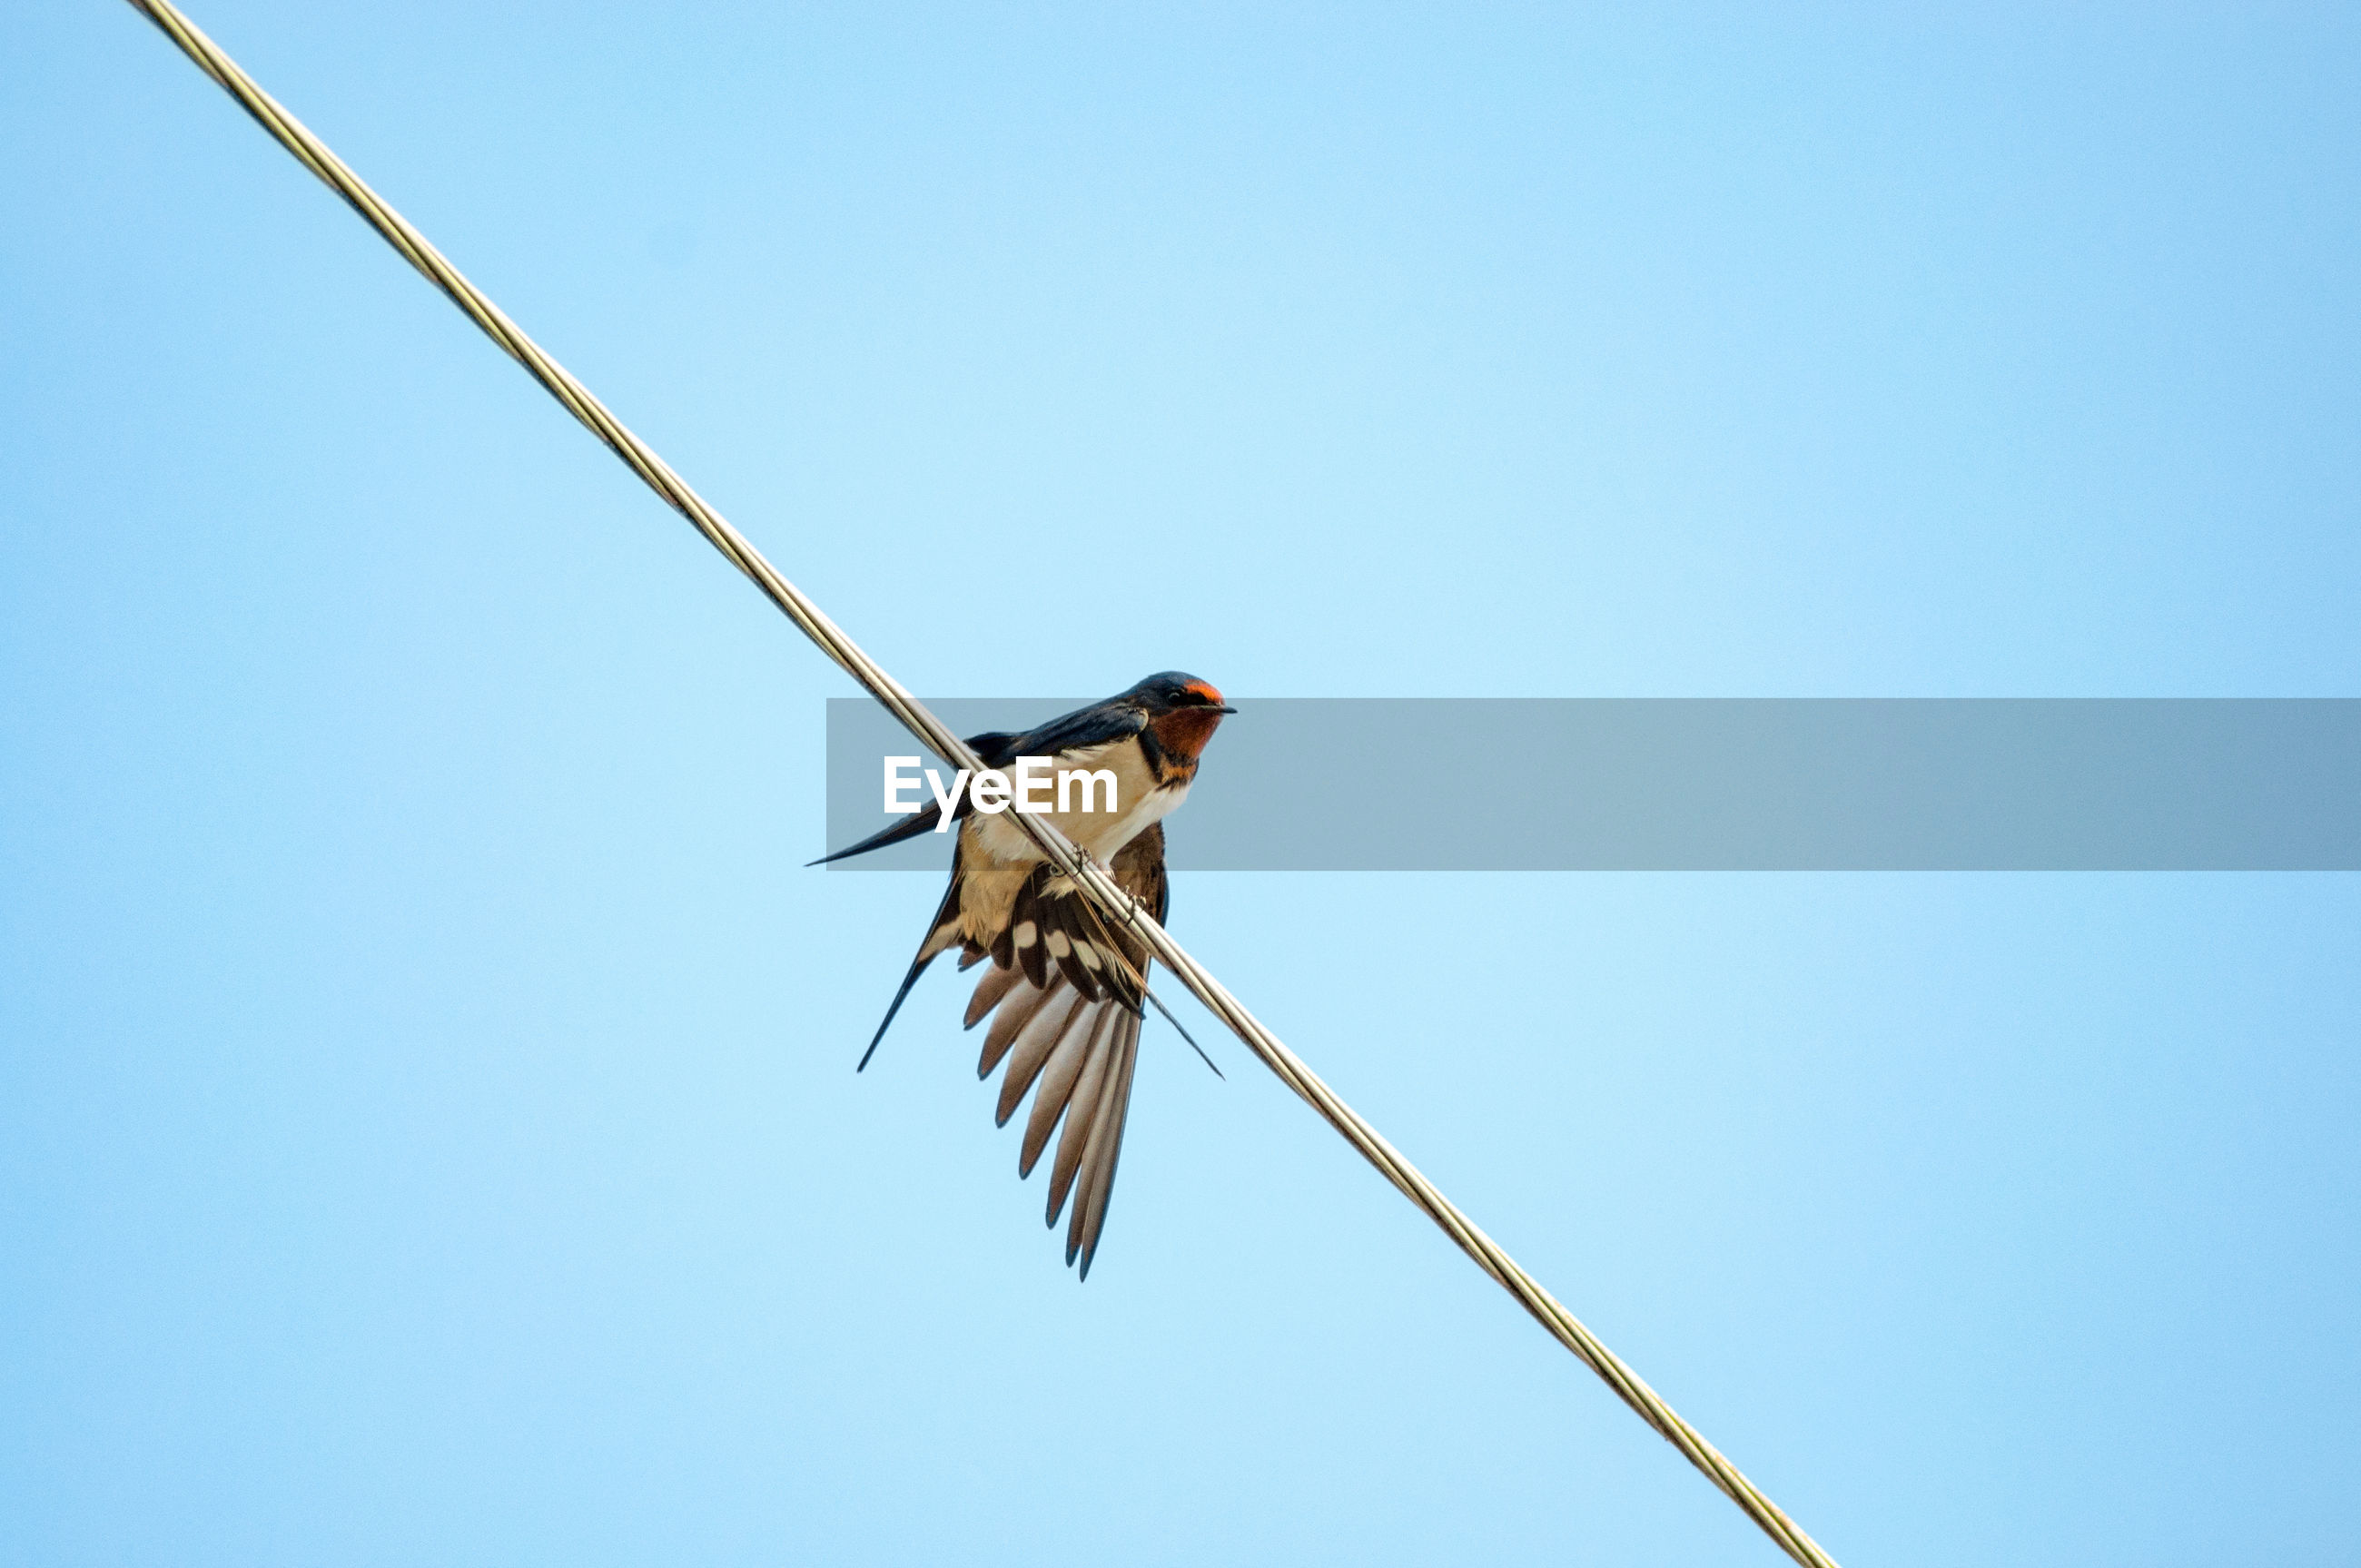 LOW ANGLE VIEW OF BIRD ON CABLE AGAINST CLEAR SKY